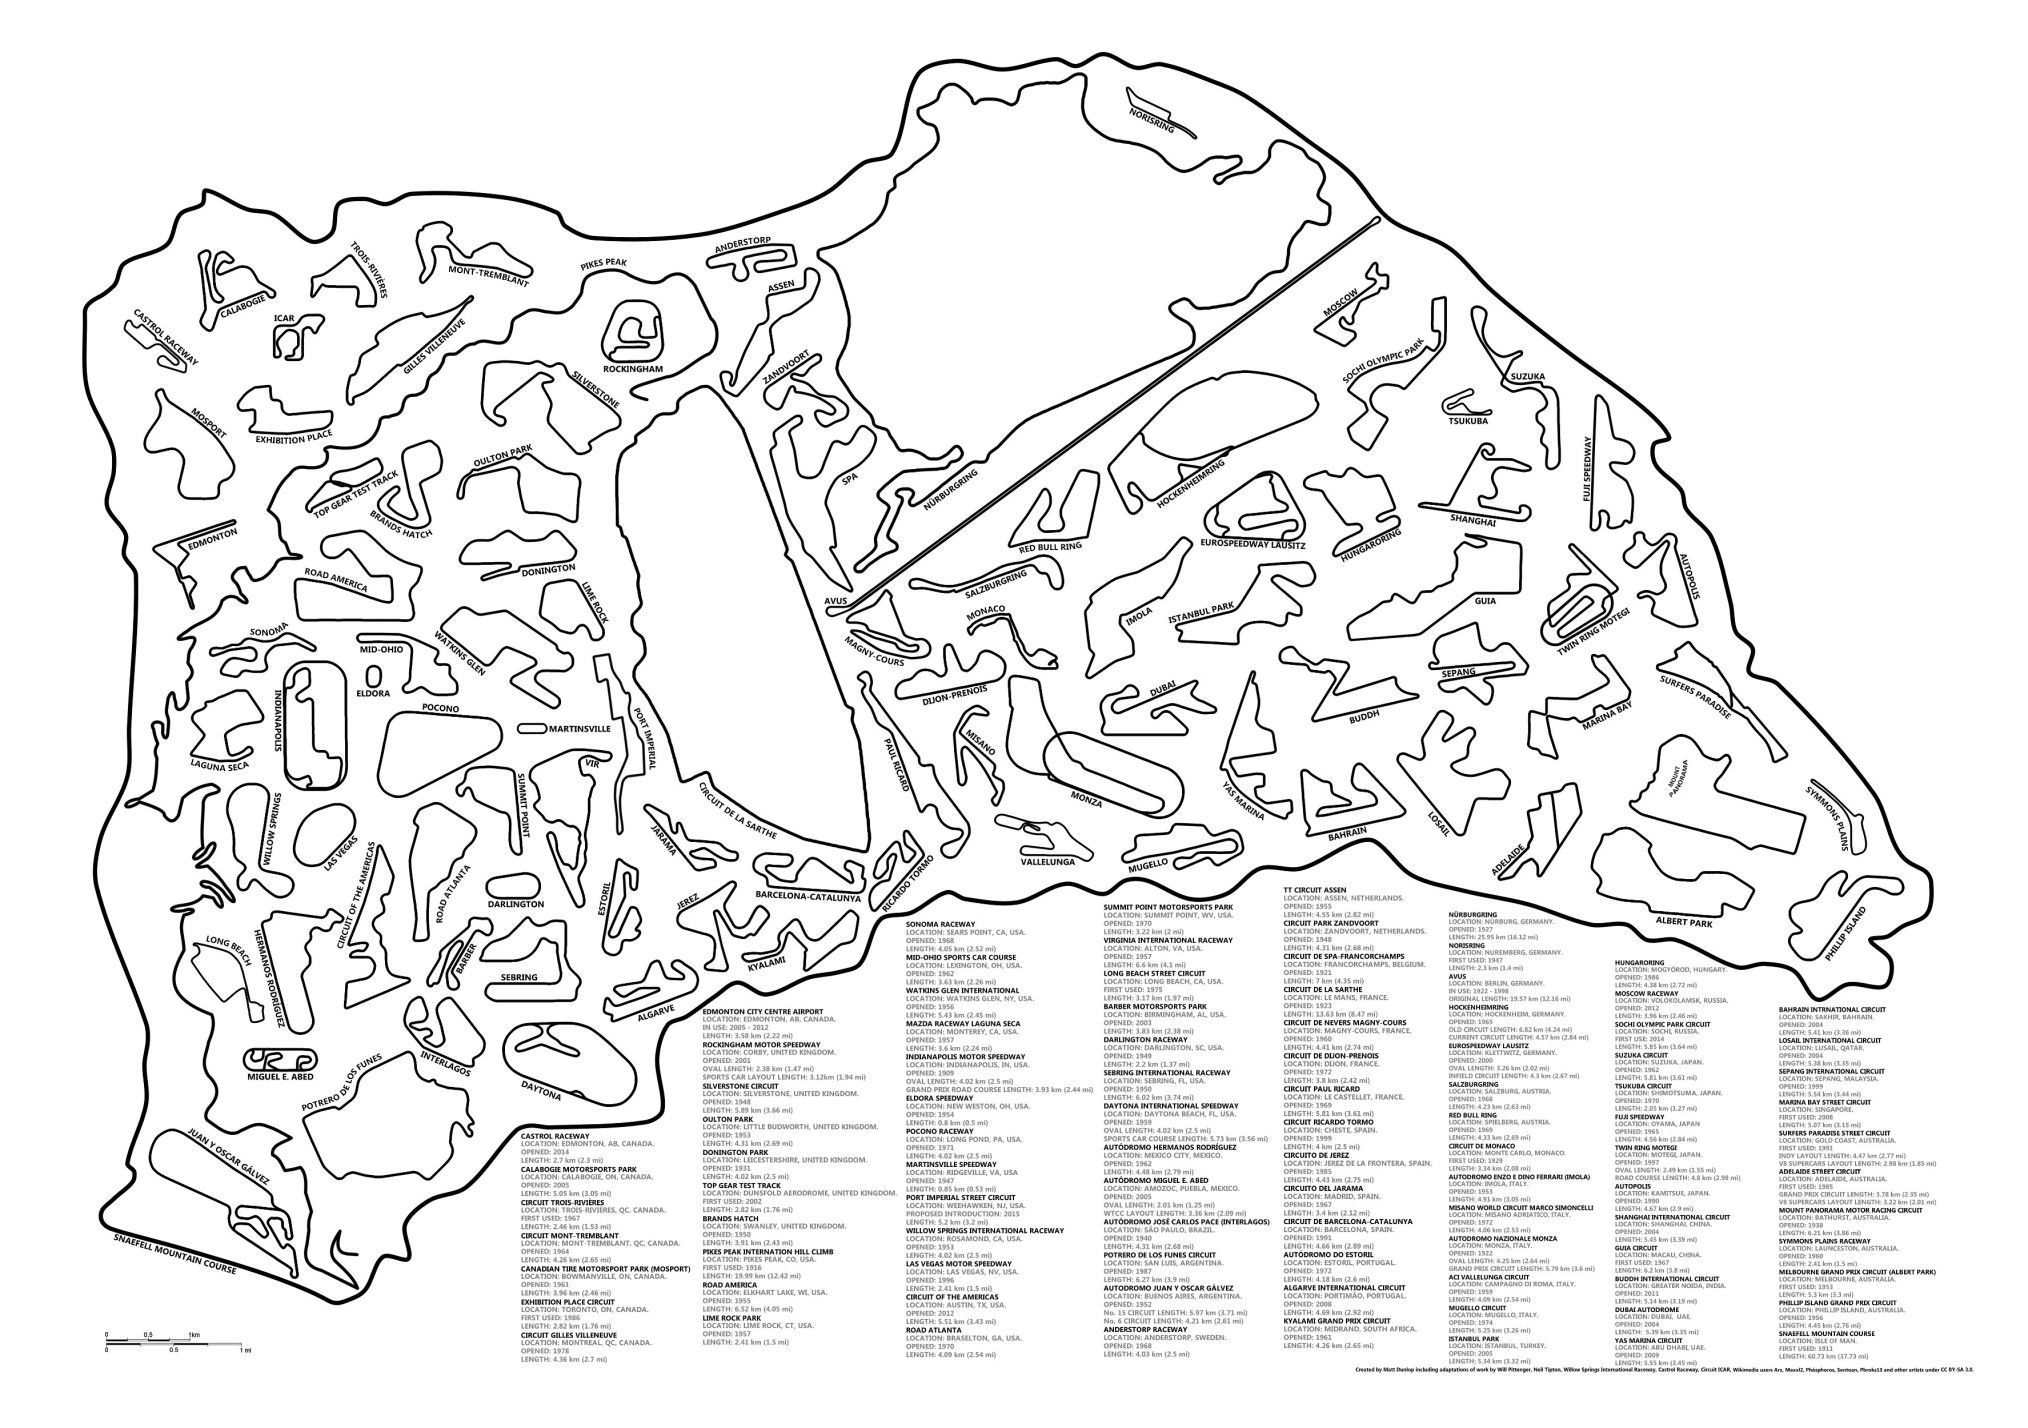 Cool Race Track Size Comparison Isle Of Man Tt Ferrari Formel